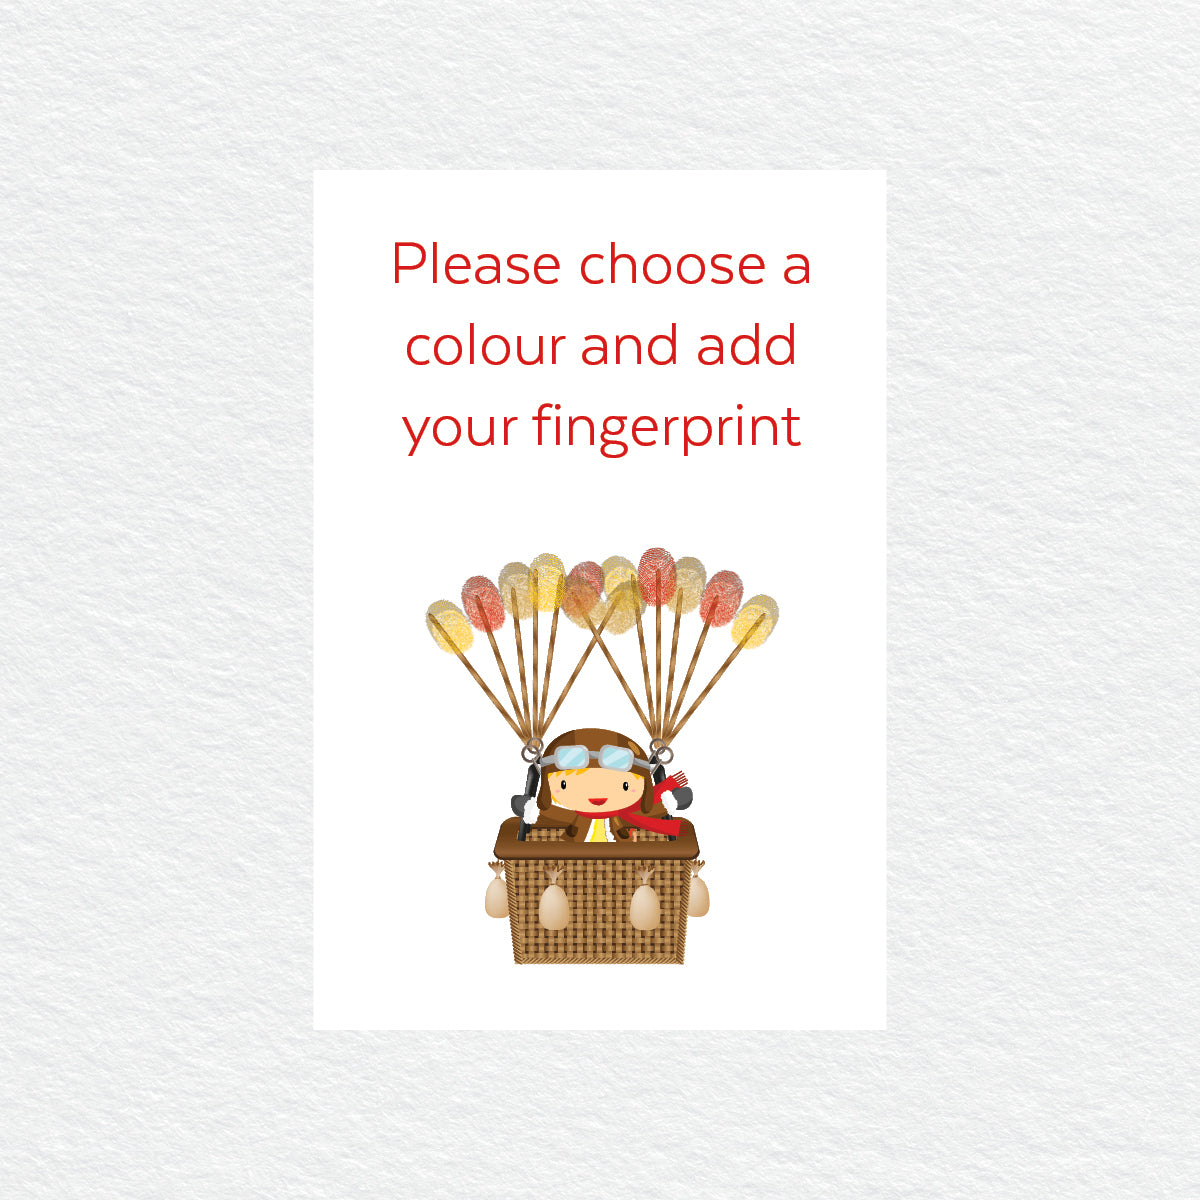 Hot Air Balloon Fingerprint Kit